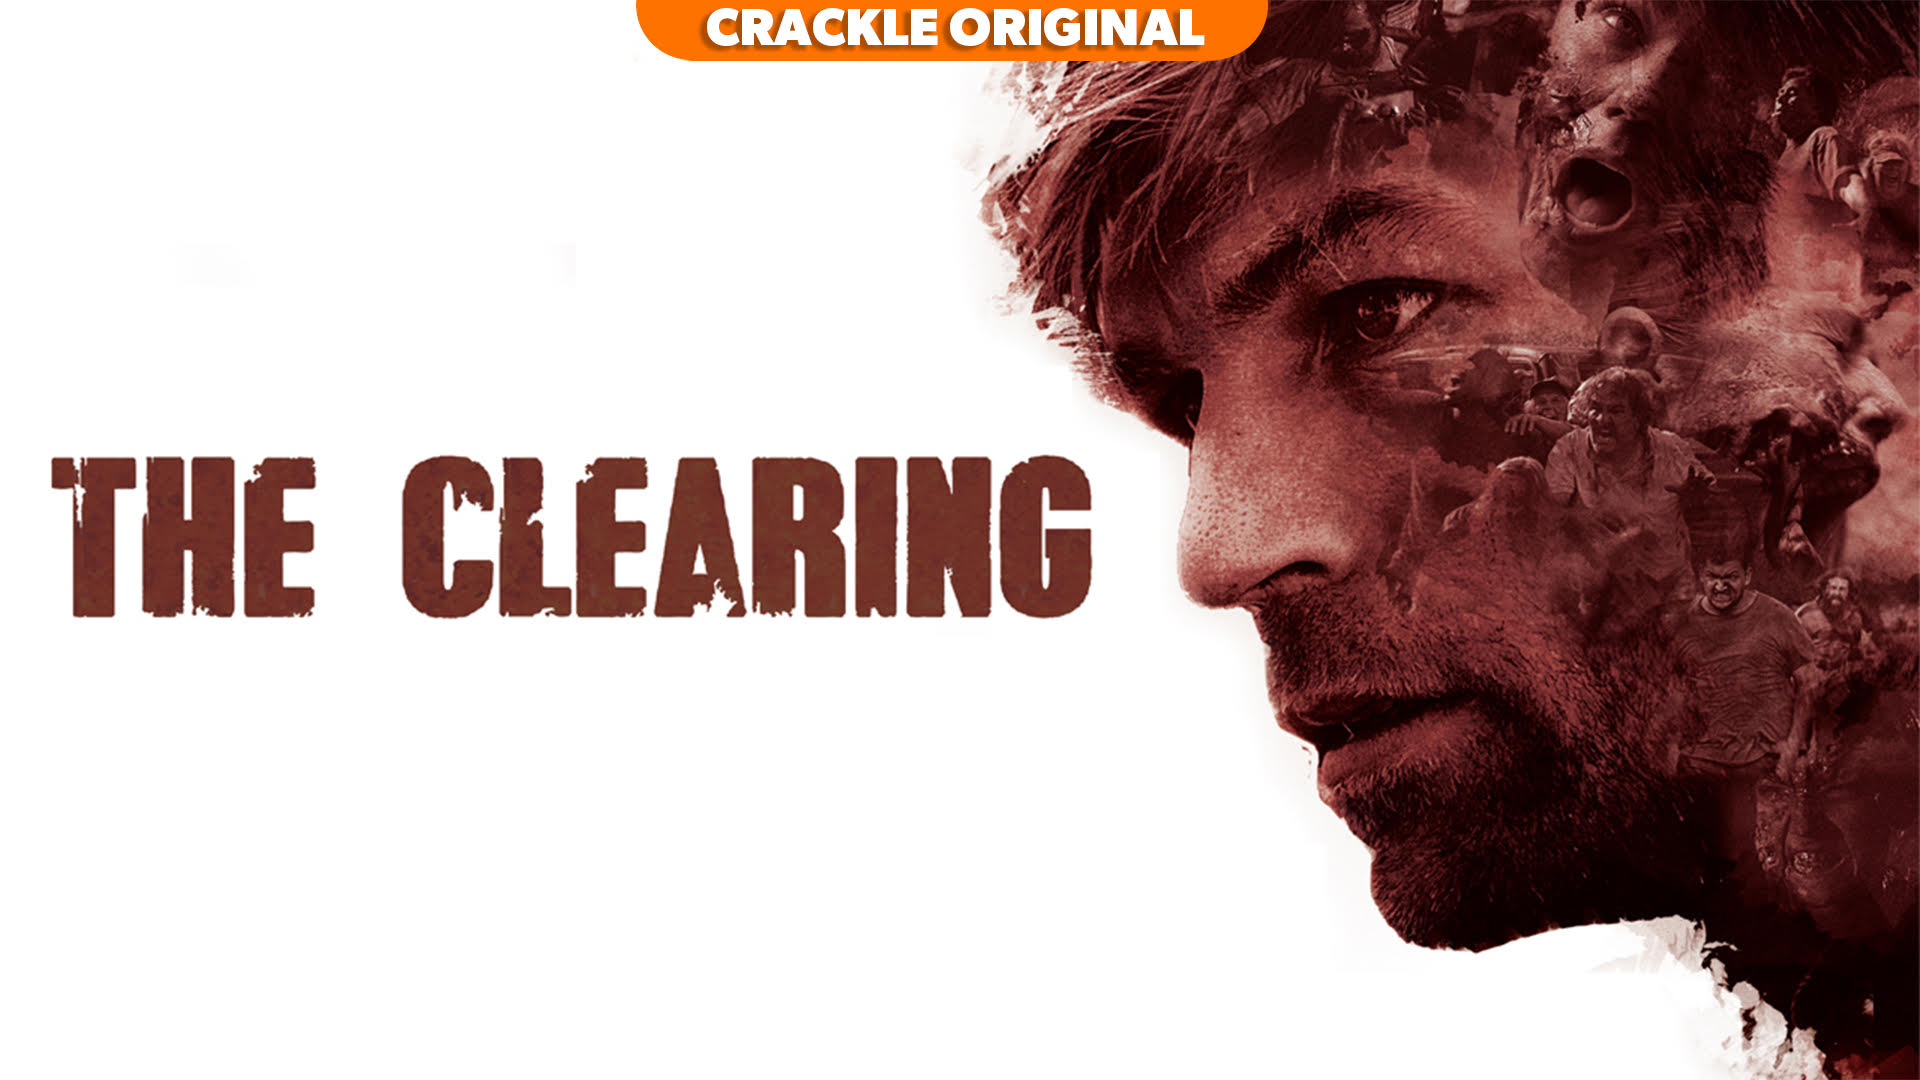 [News] Crackle Announces Horror Film THE CLEARING